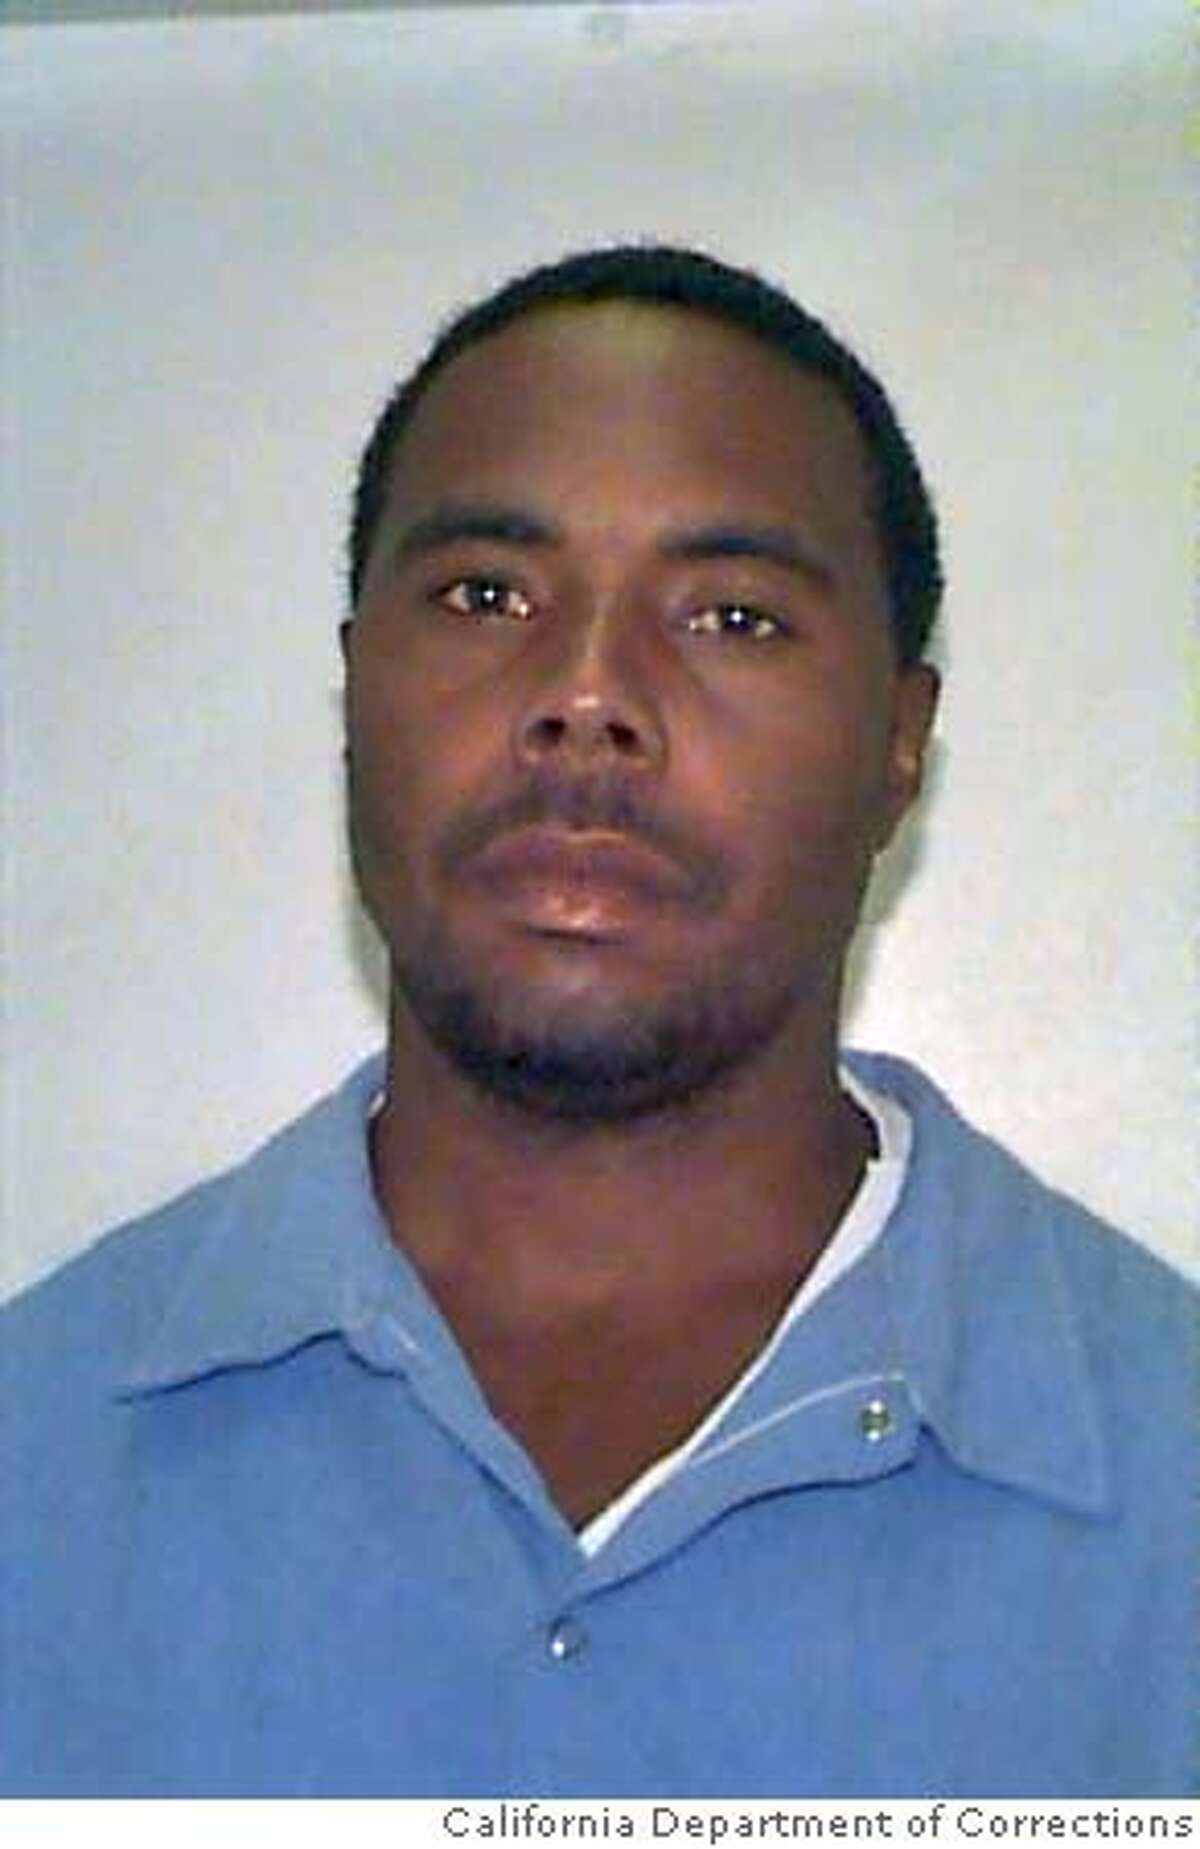 GOFF For GOFF; Antoine Goff, convicted of the 1989 murder of Roderick Shannon. Photo provided by the California Department of Corrections ; Inserted into mediagrid on 6/19/03 in . / HO ALSO RAN 9/4/03 CAT